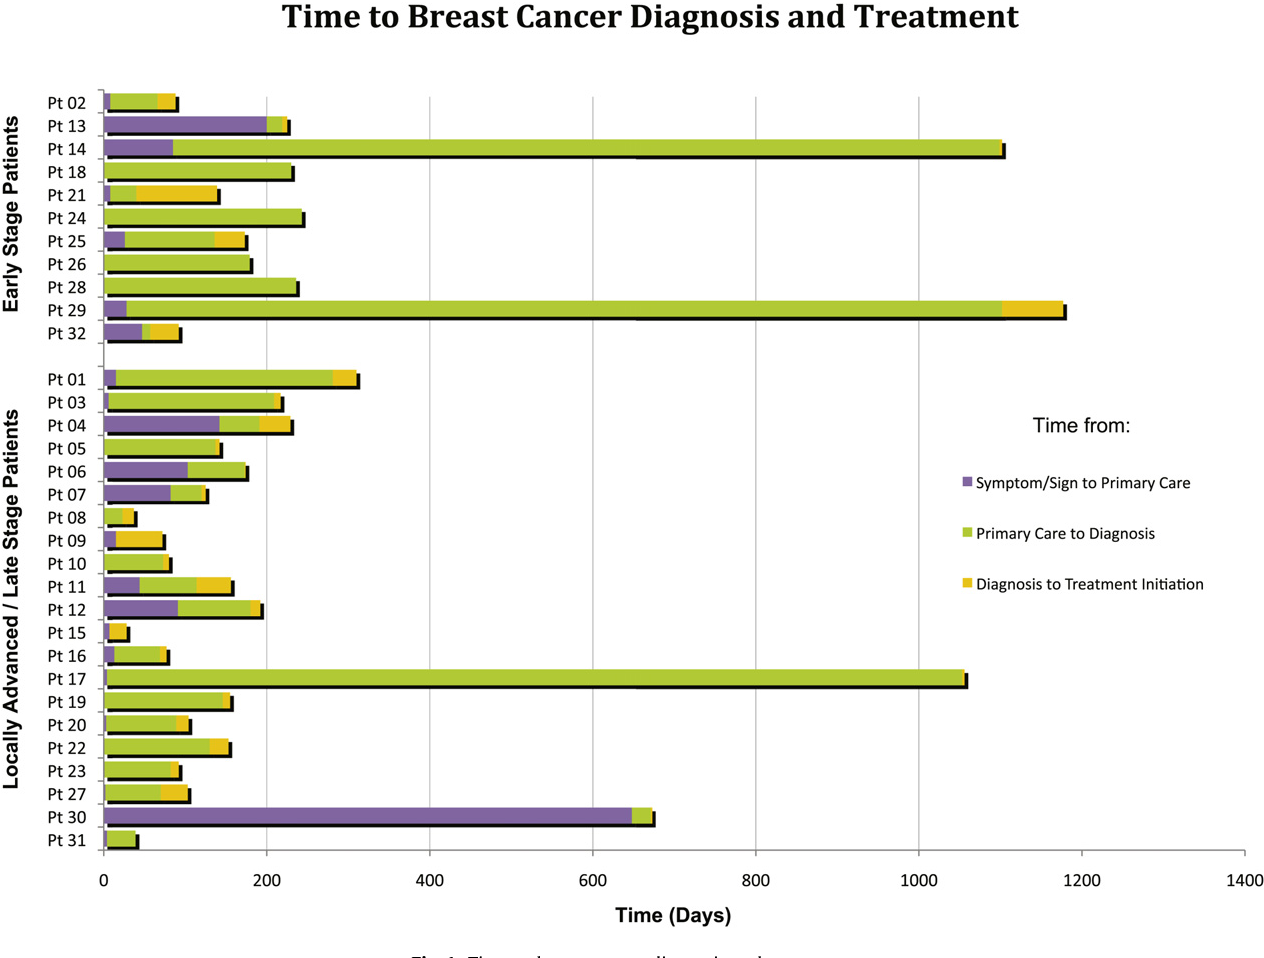 The role of health system factors in delaying final diagnosis and